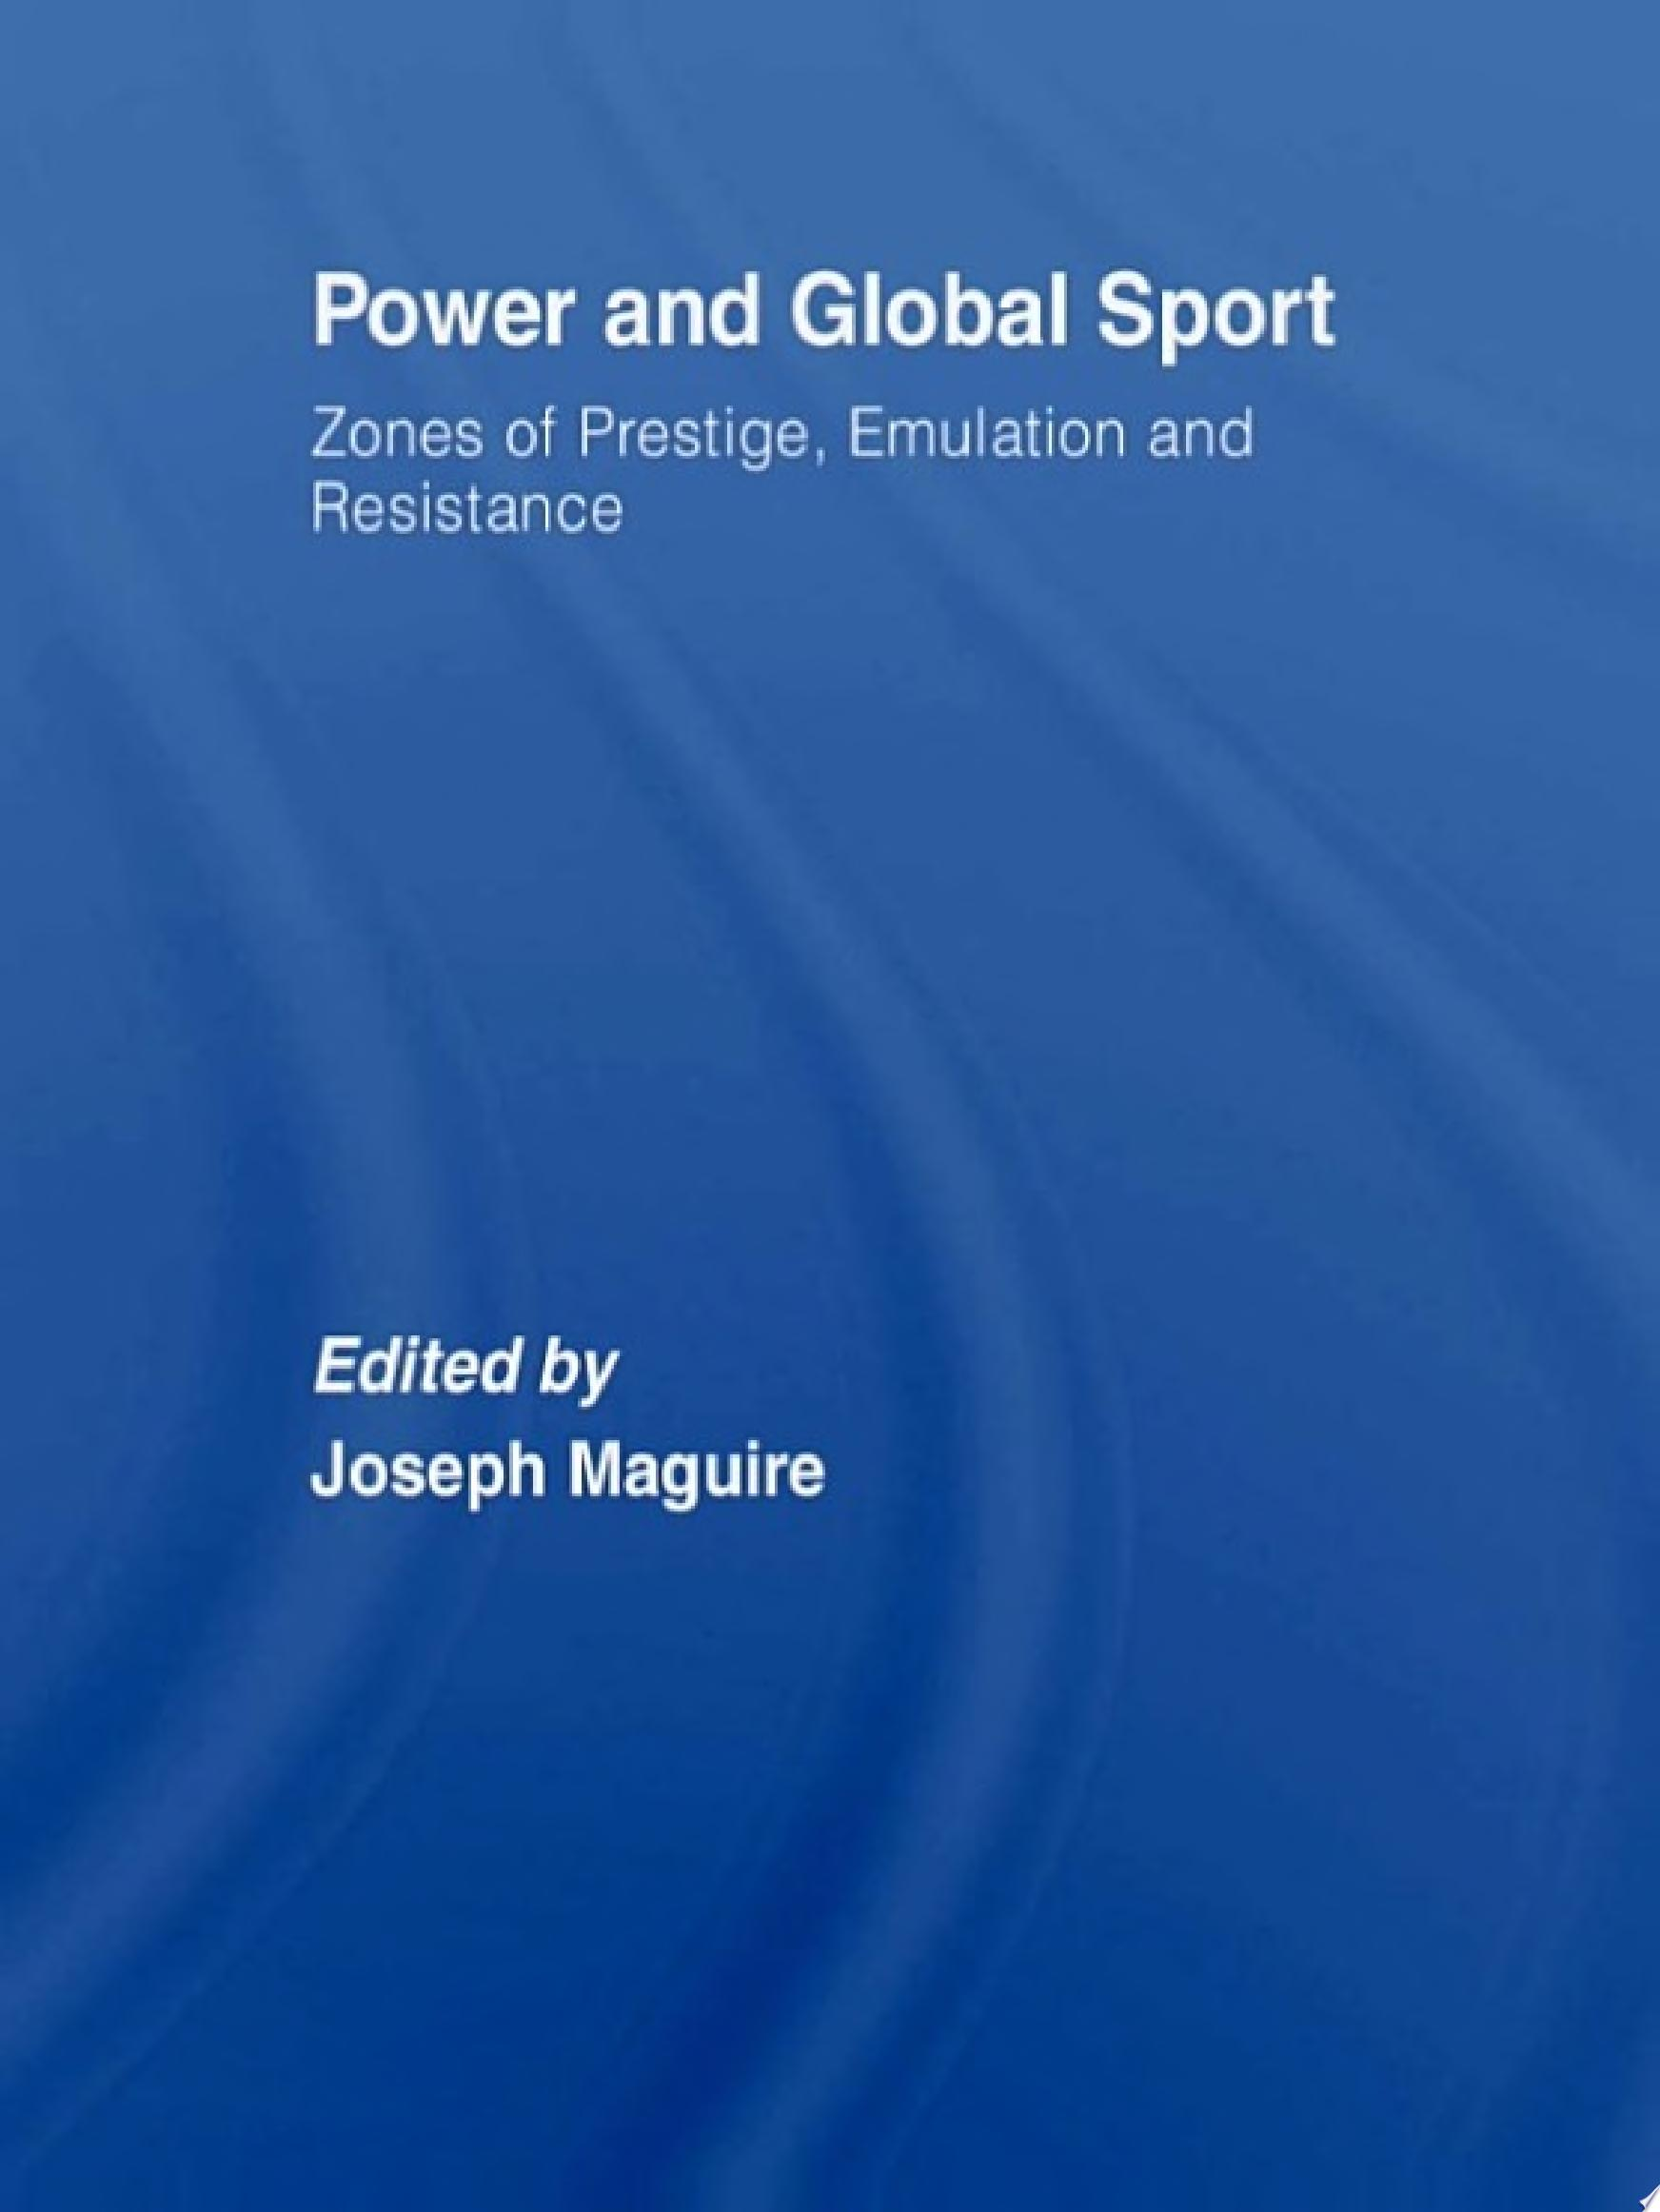 Power and Global Sport